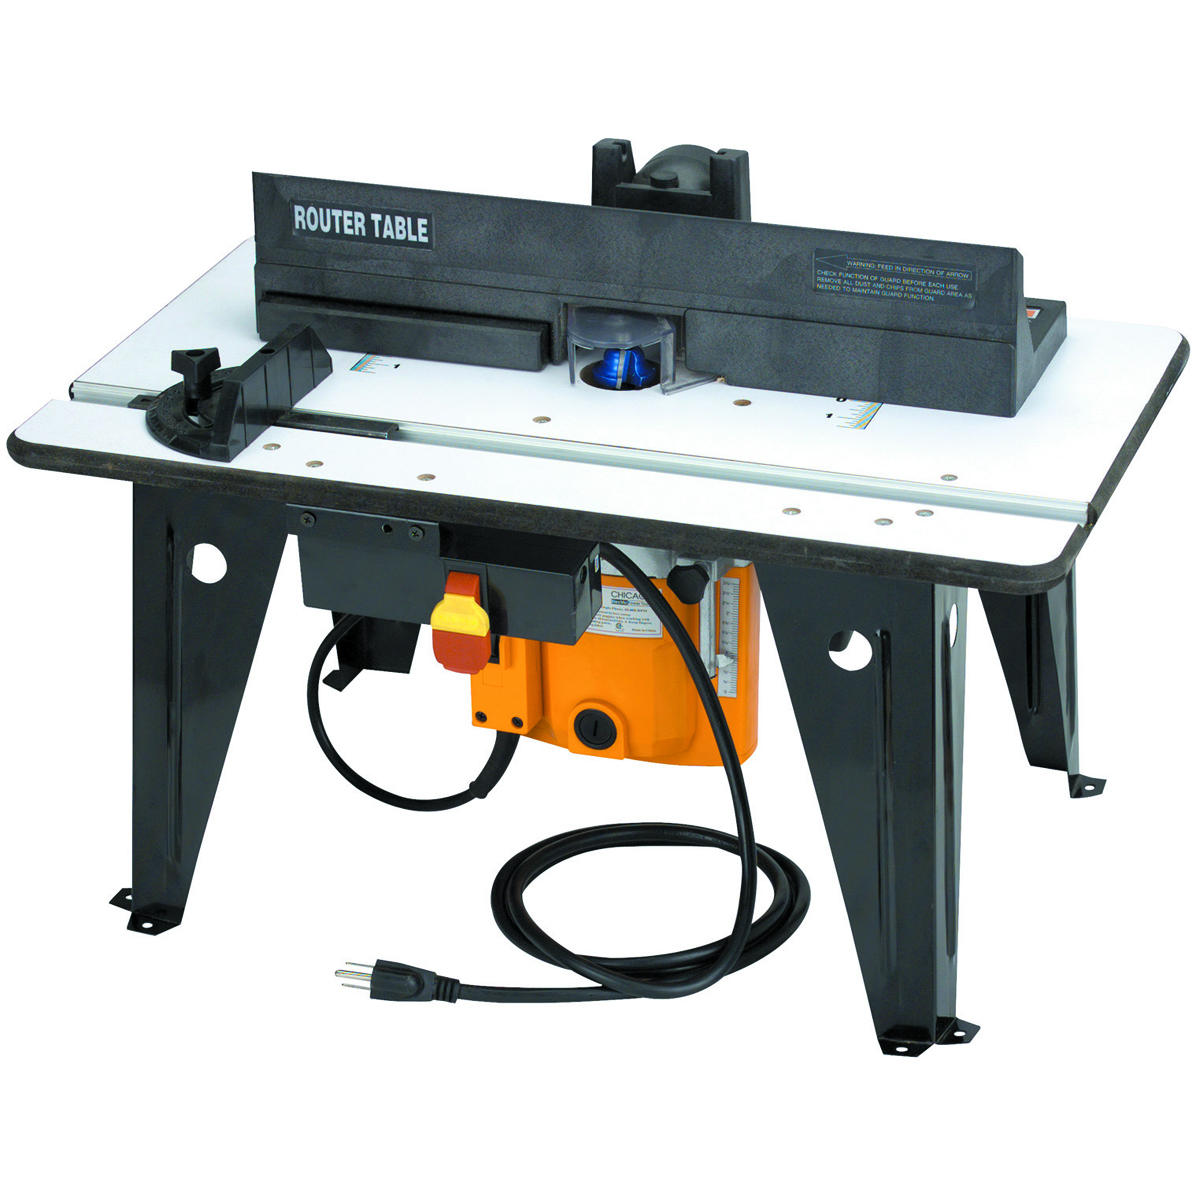 Benchtop router table with 1 34 hp router greentooth Choice Image